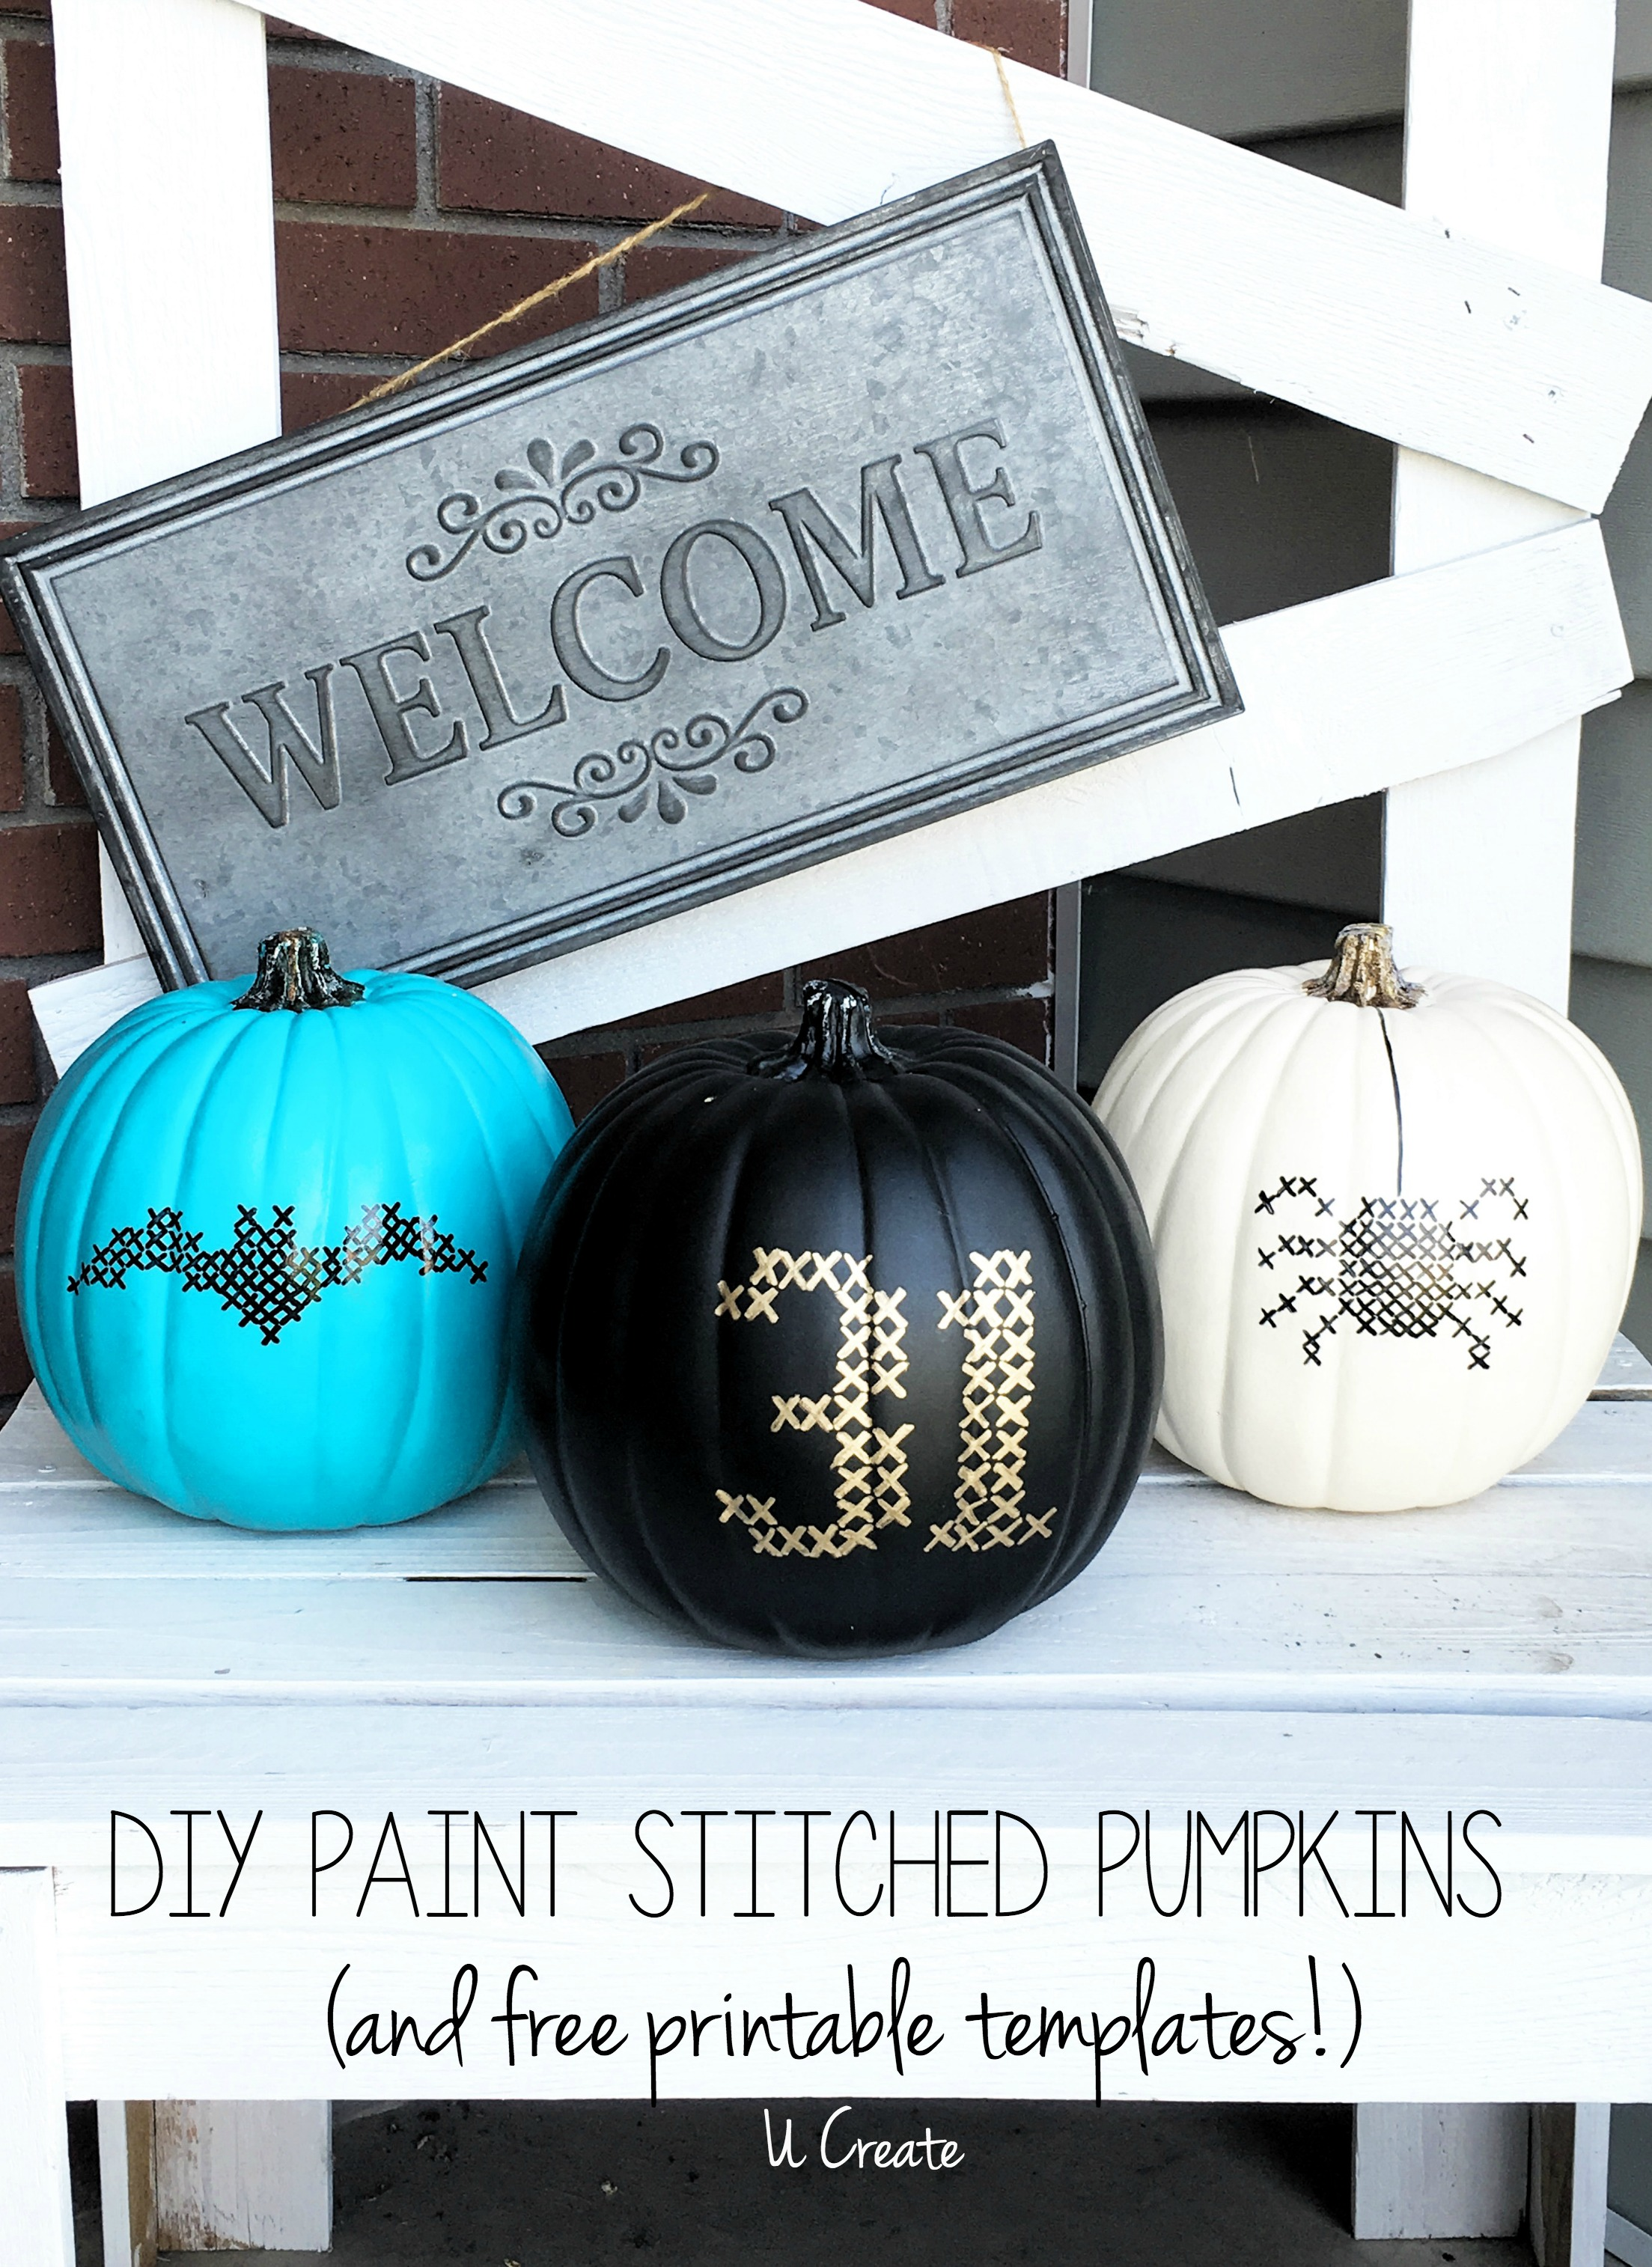 DIY Paint Stitched Pumpkins with free templates by U Create